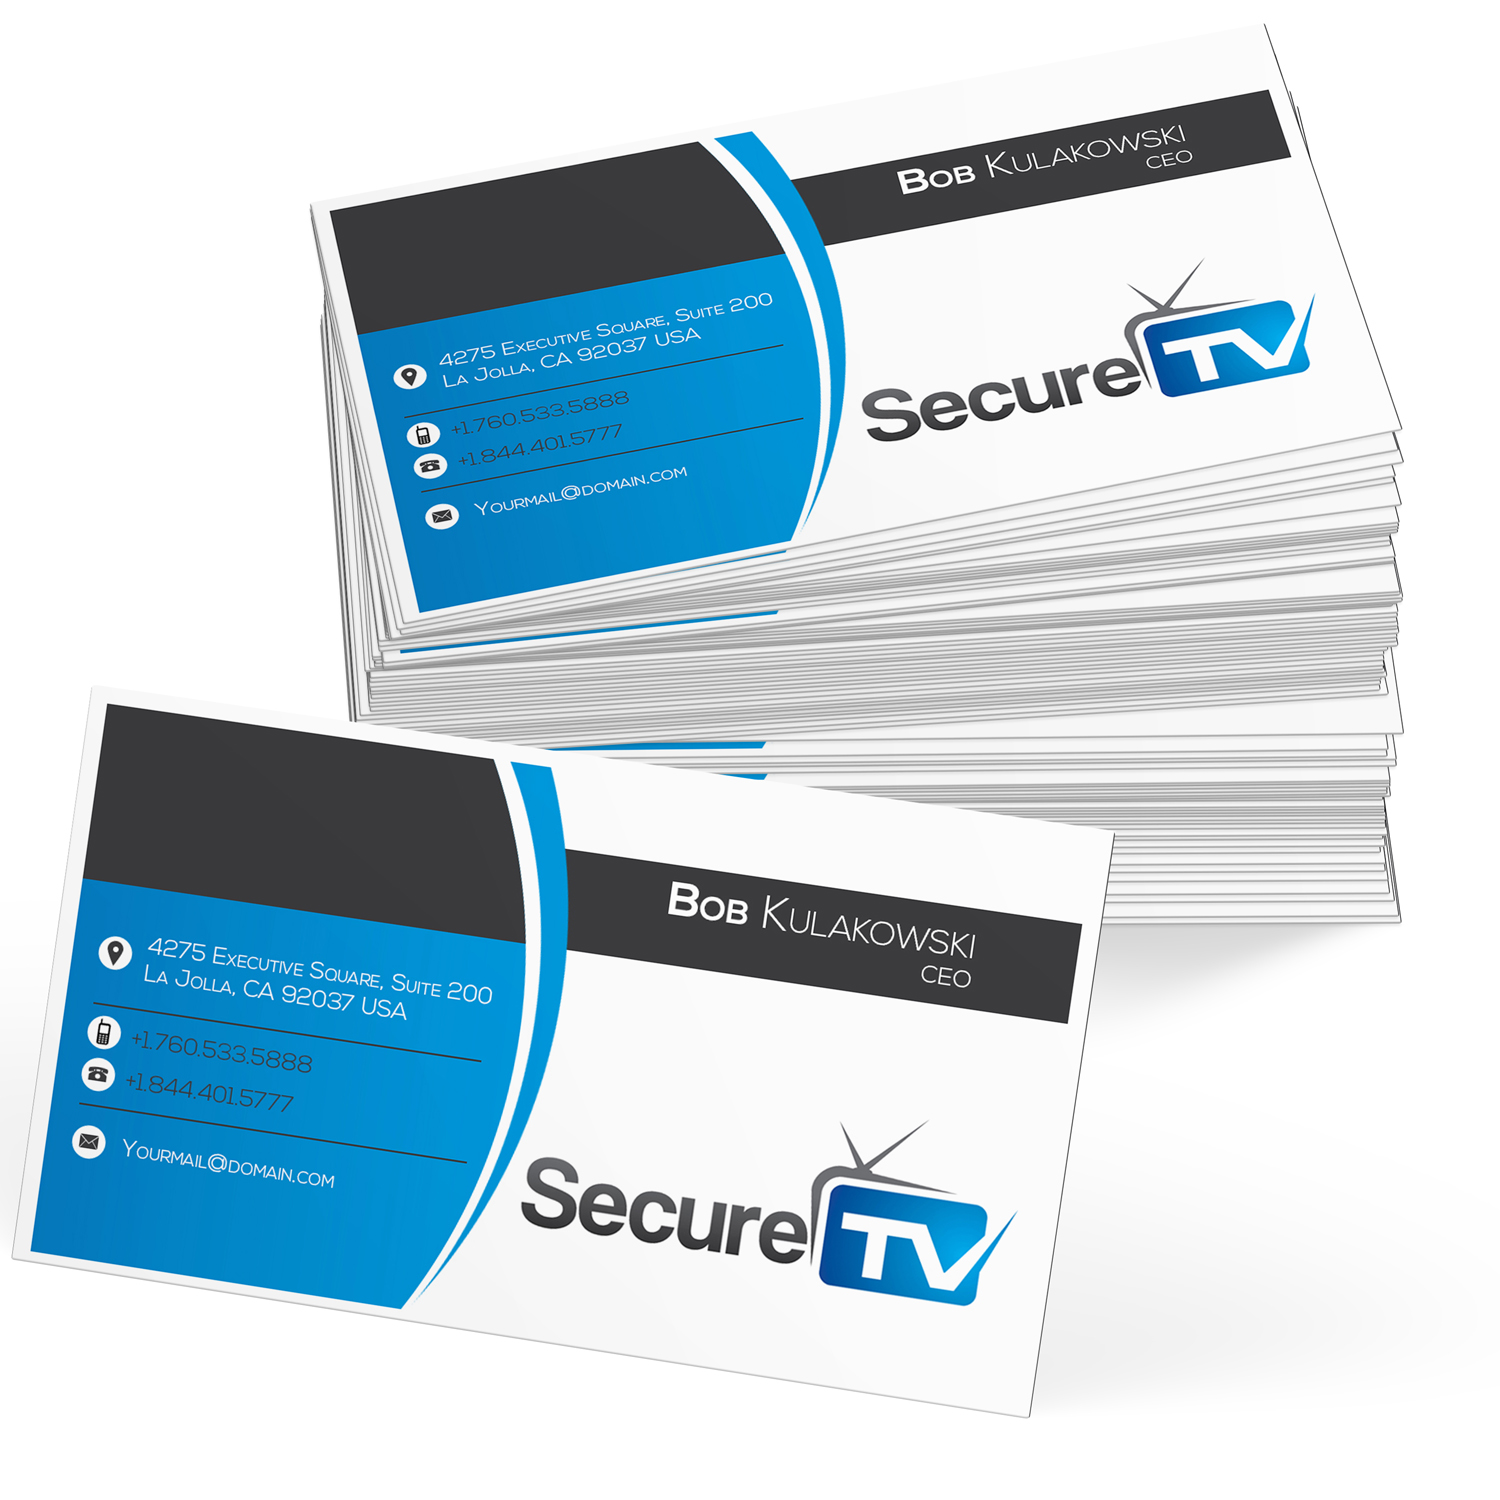 Professional serious cable tv business card design for secure tv business card design by souravdey1983 for secure tv design 12363749 reheart Images